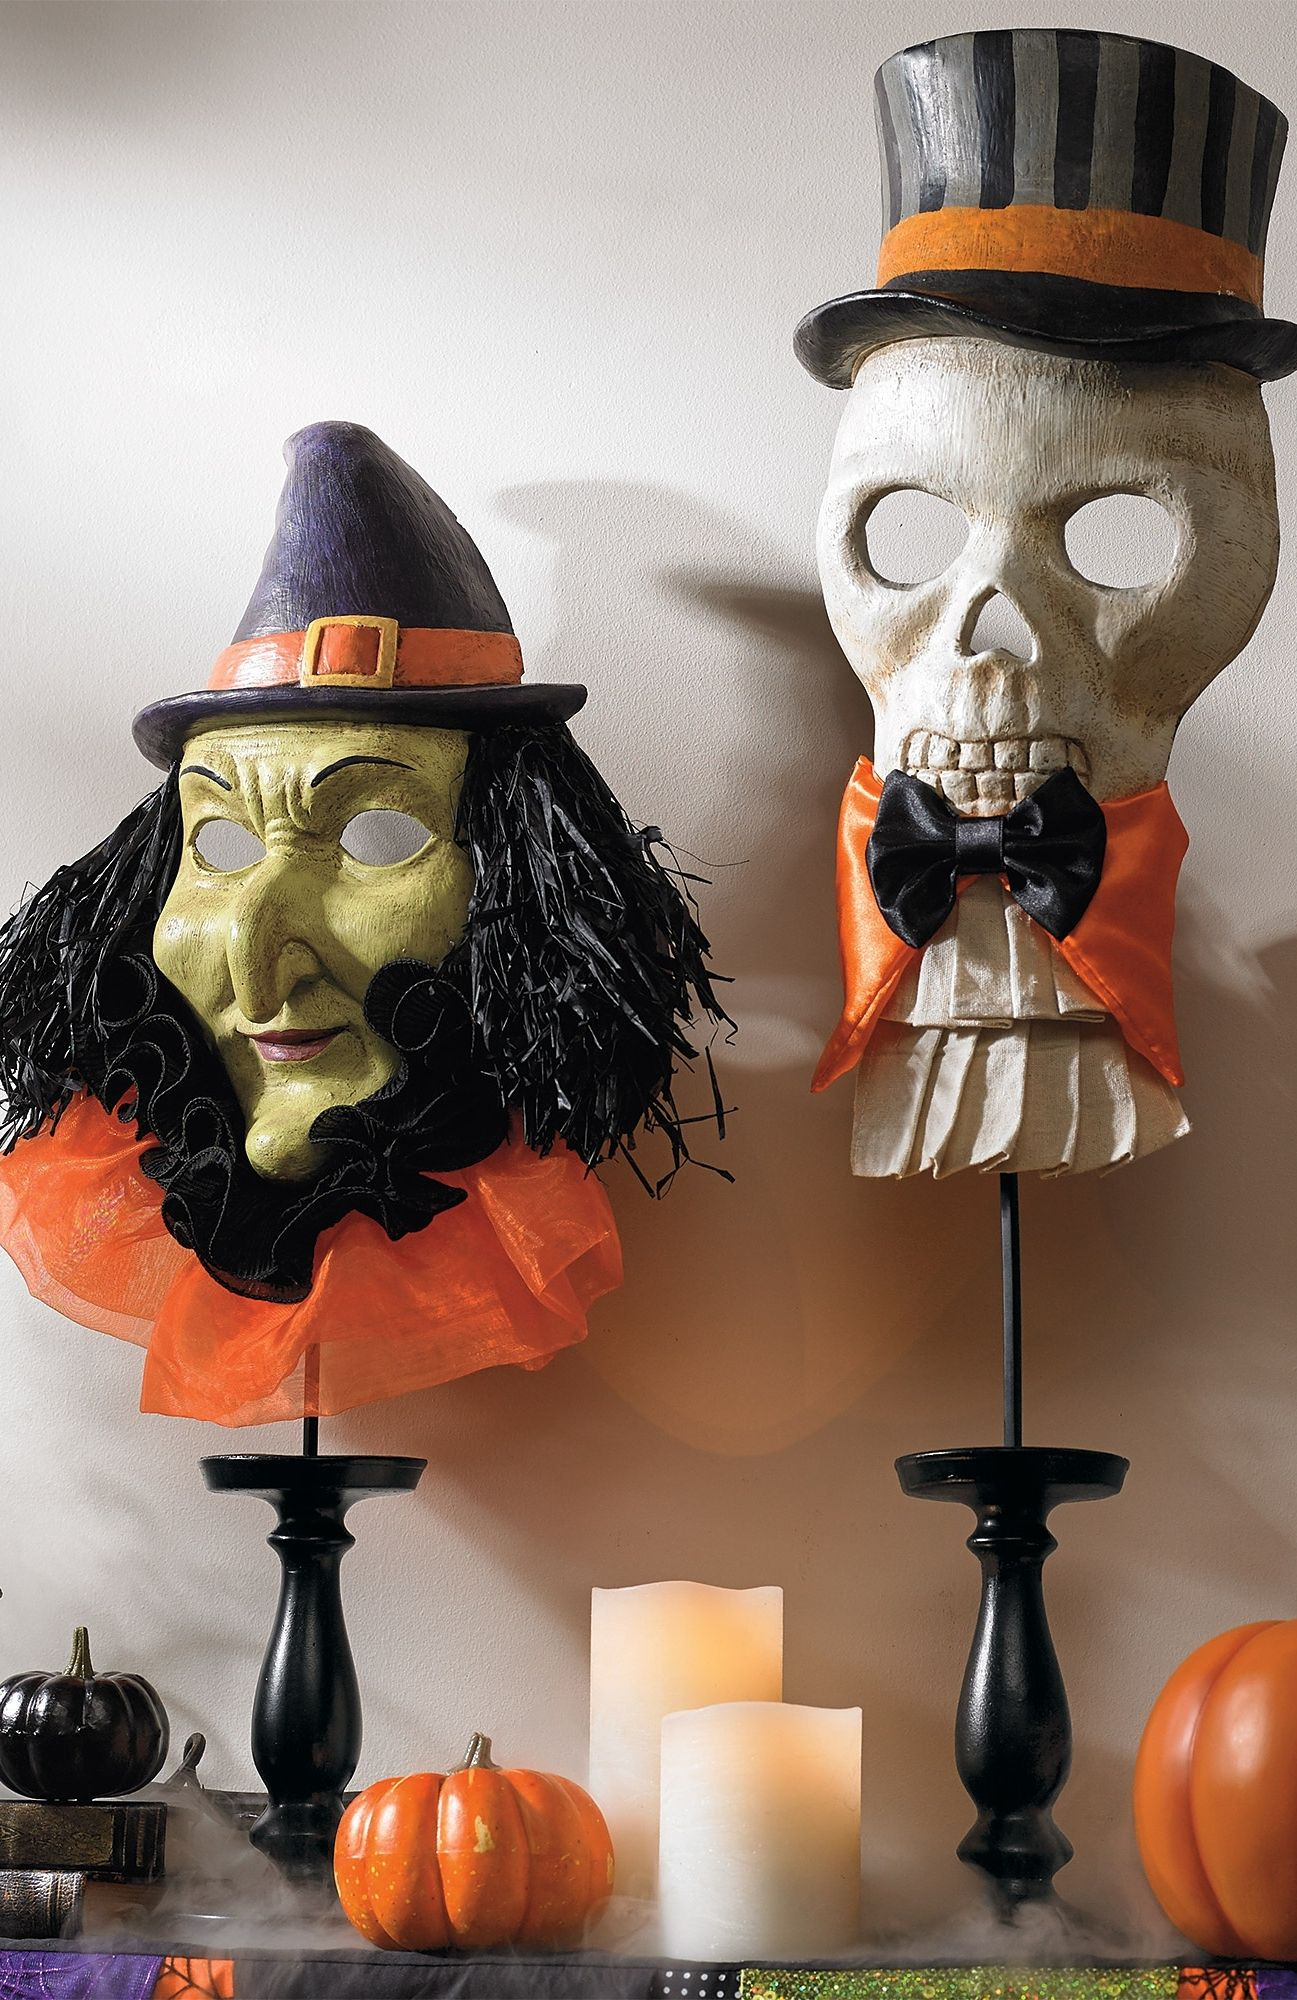 Relive the magic of Halloweens past with our vintage-inspired Witch - Witch Decorations For Halloween